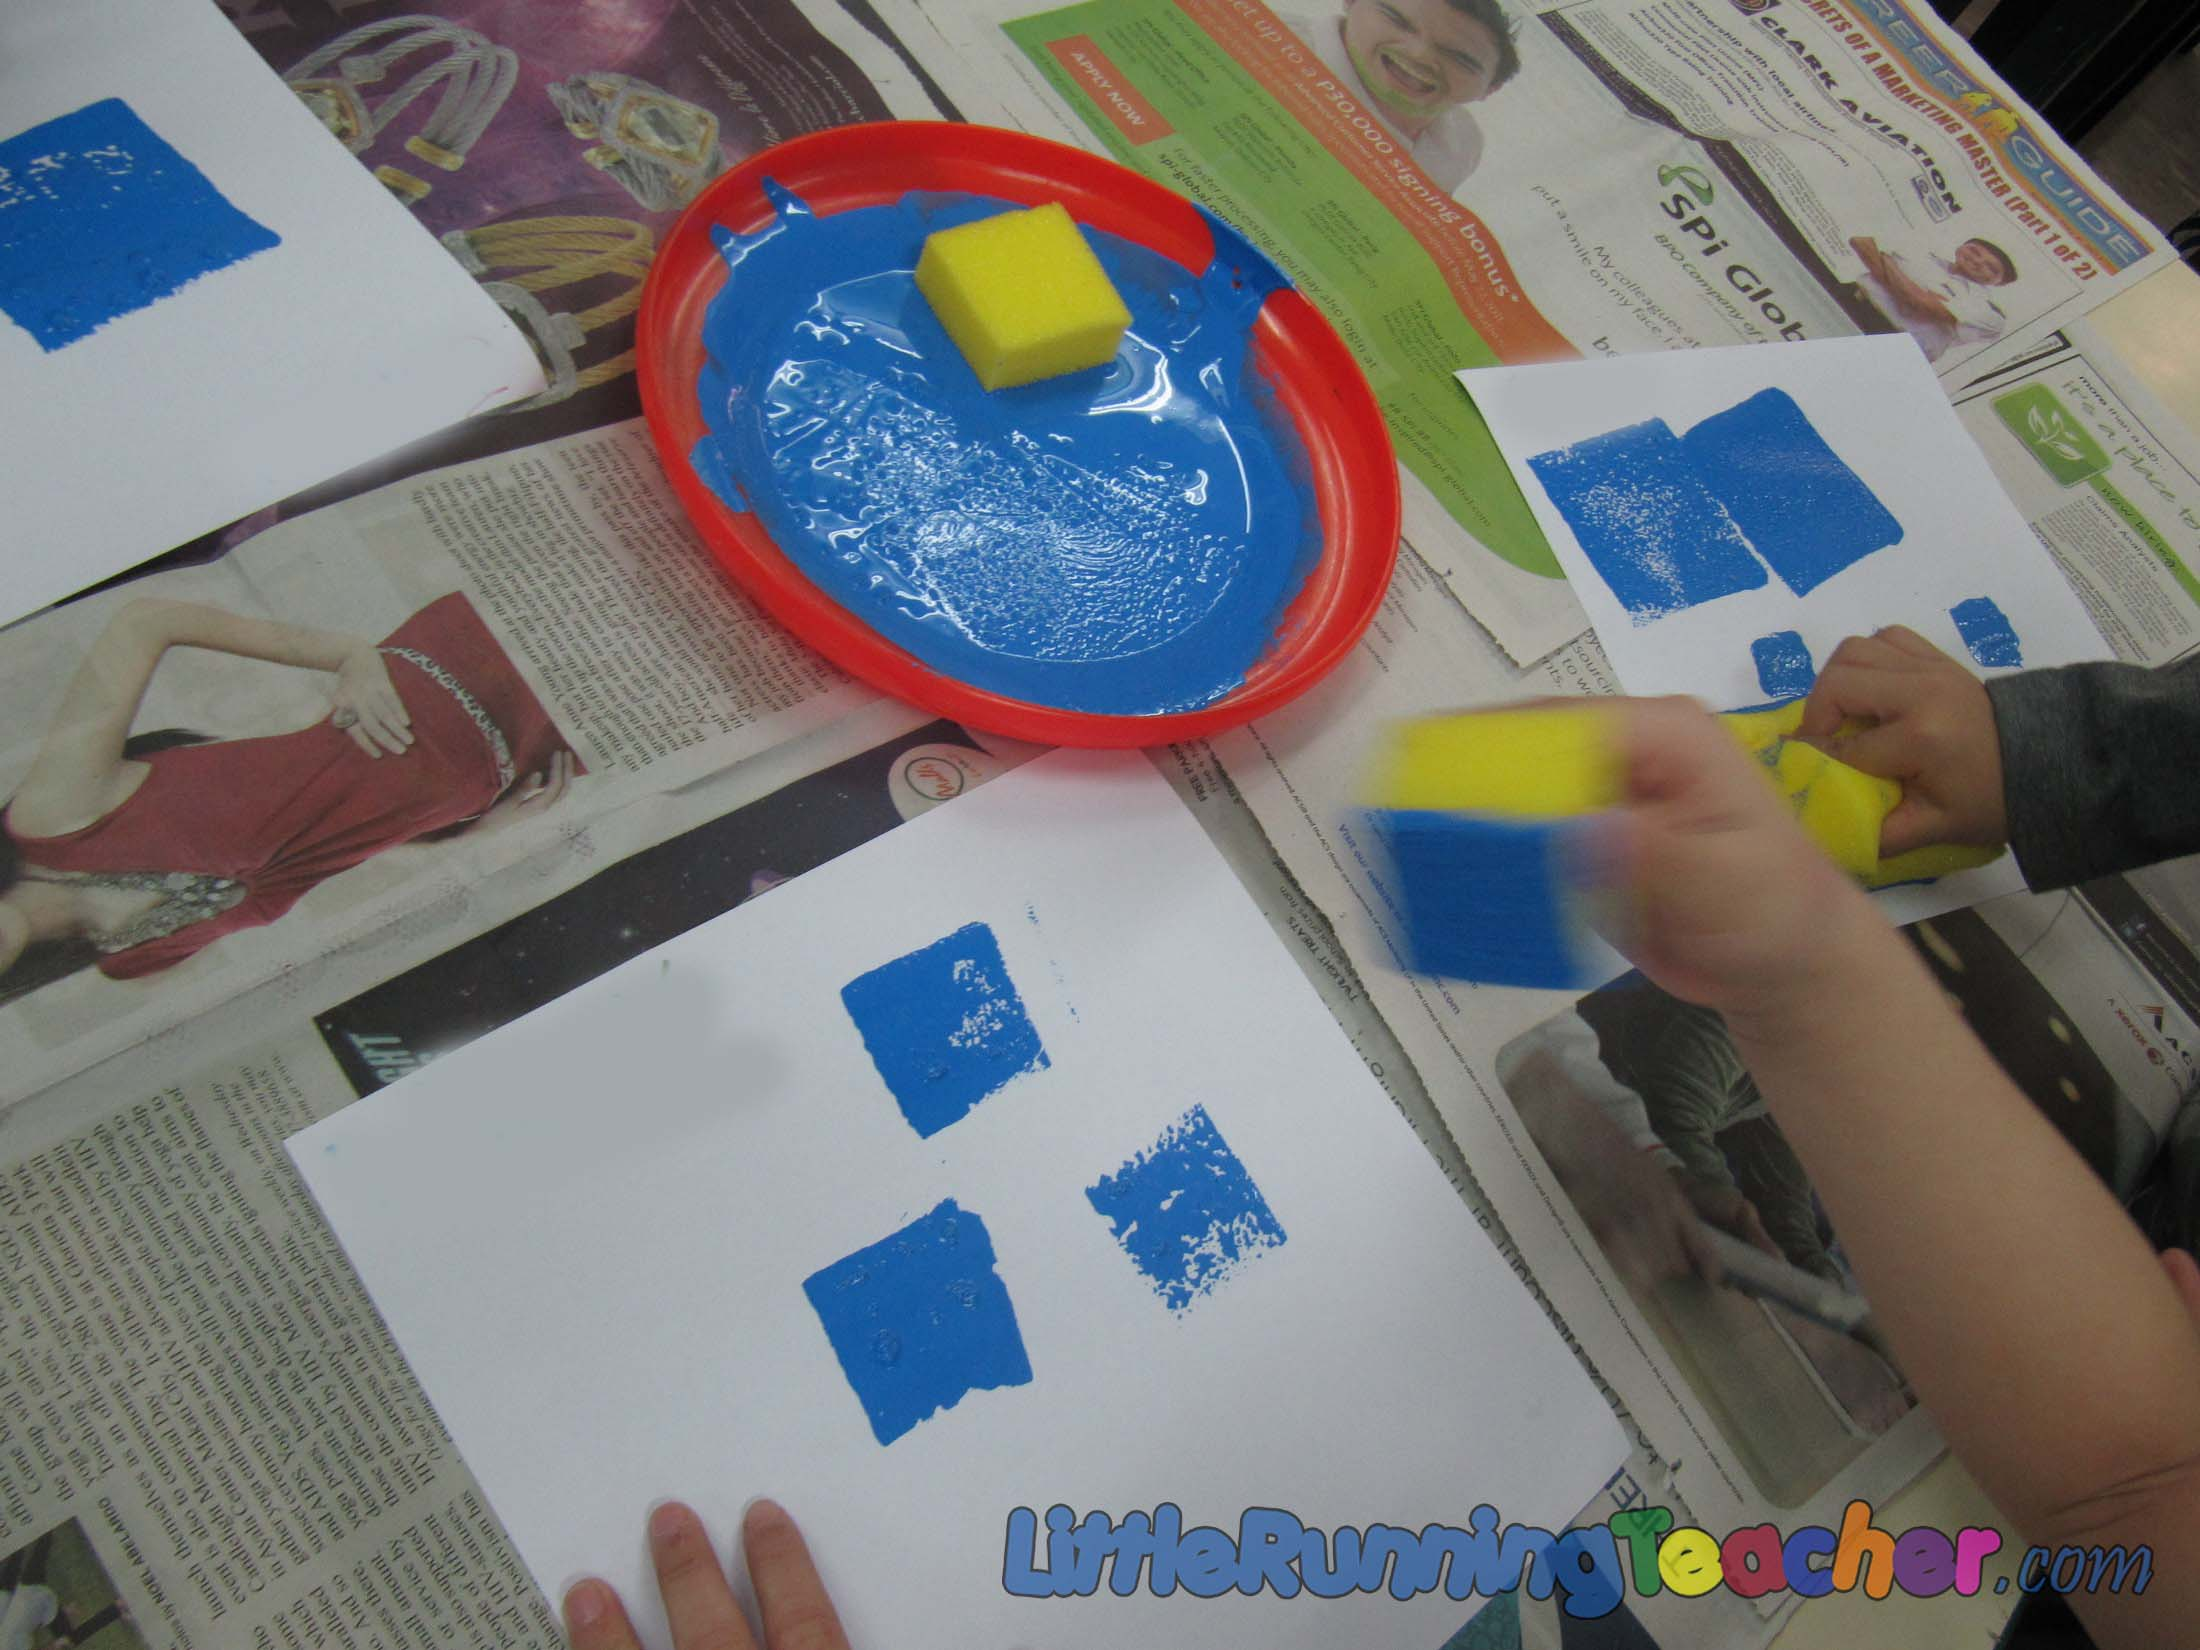 Colour shades activities - Let